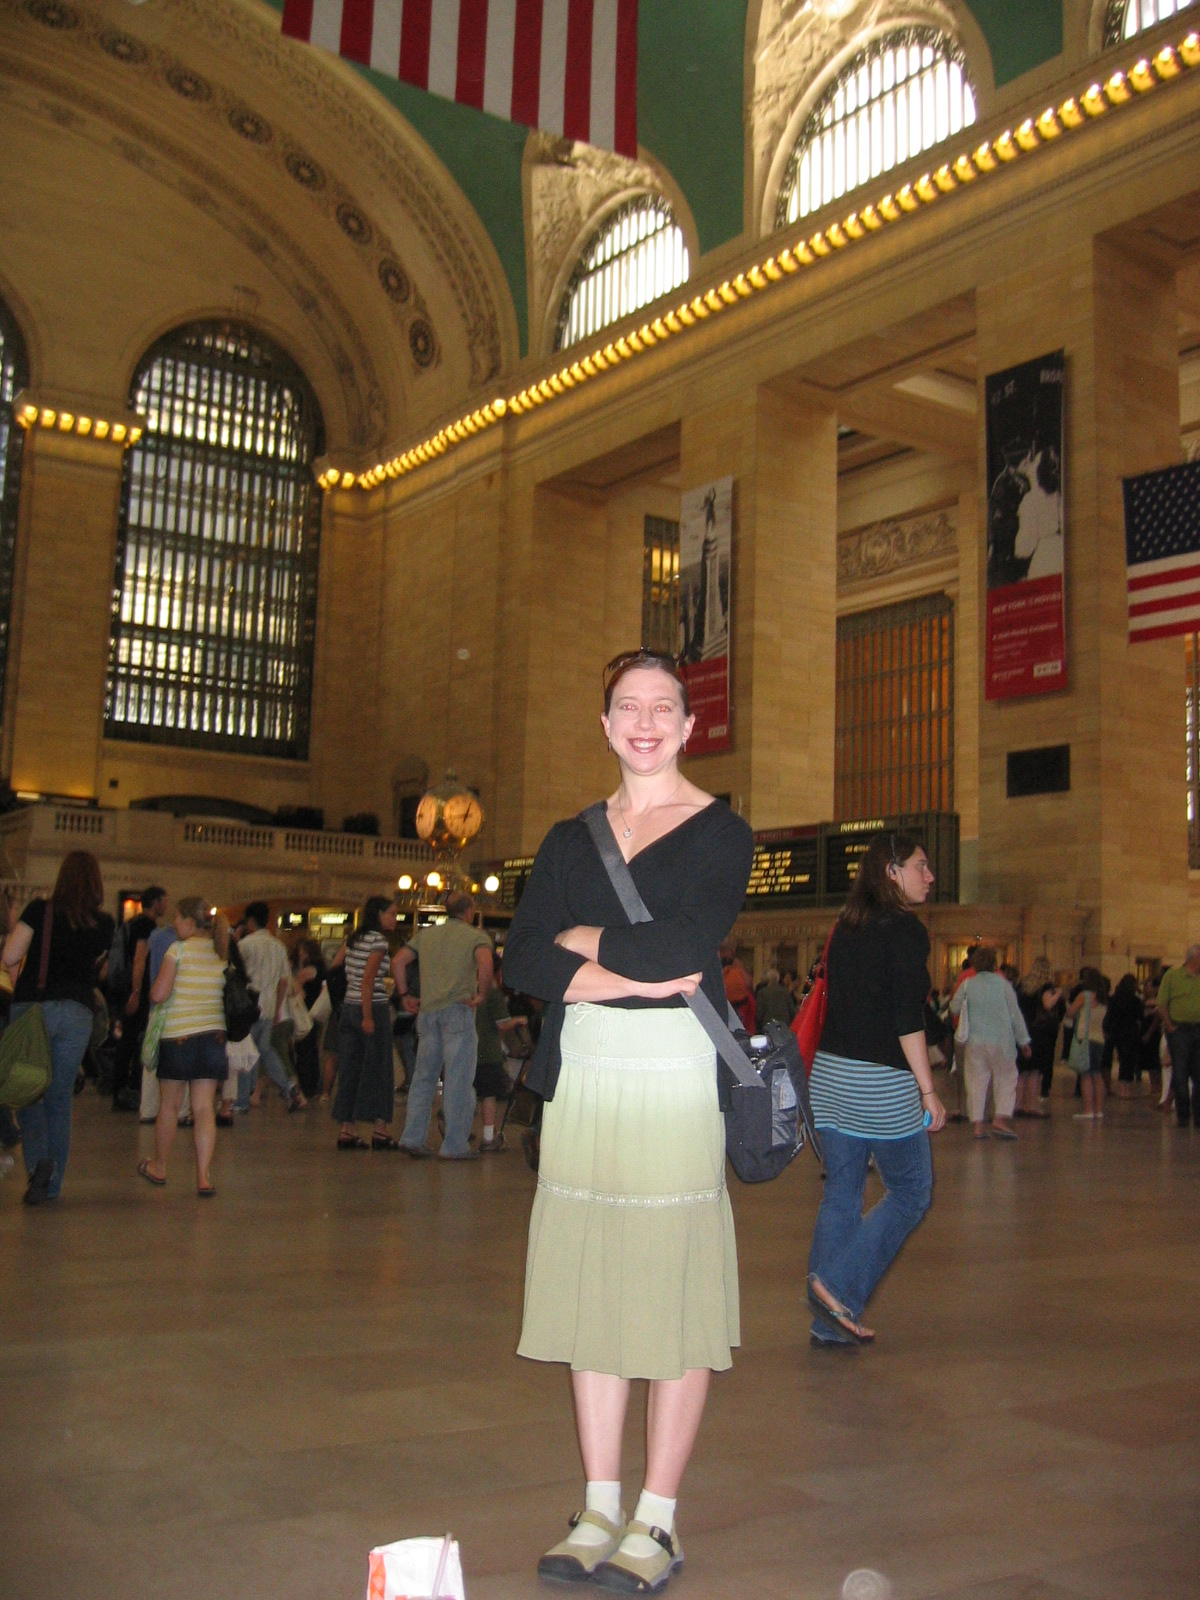 Clare in Grand Central Station